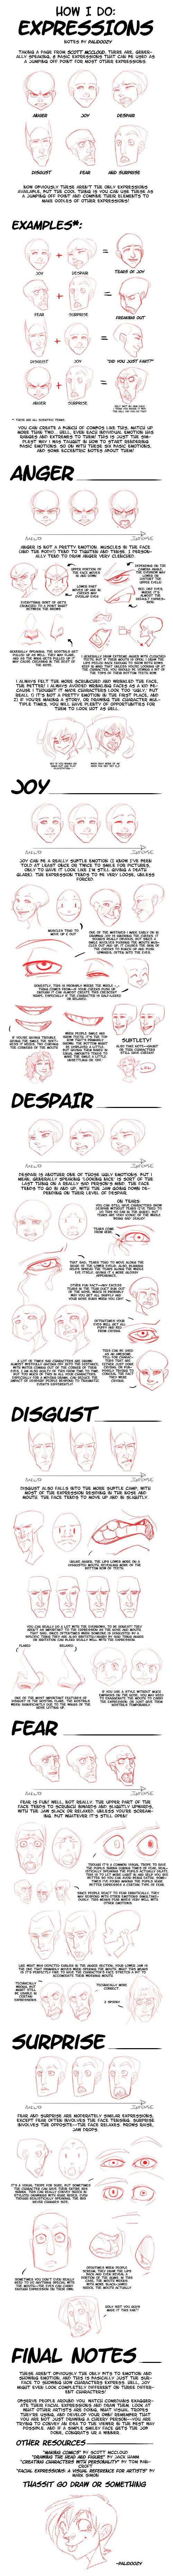 27 best Anatomy images on Pinterest | Character design, How to draw ...